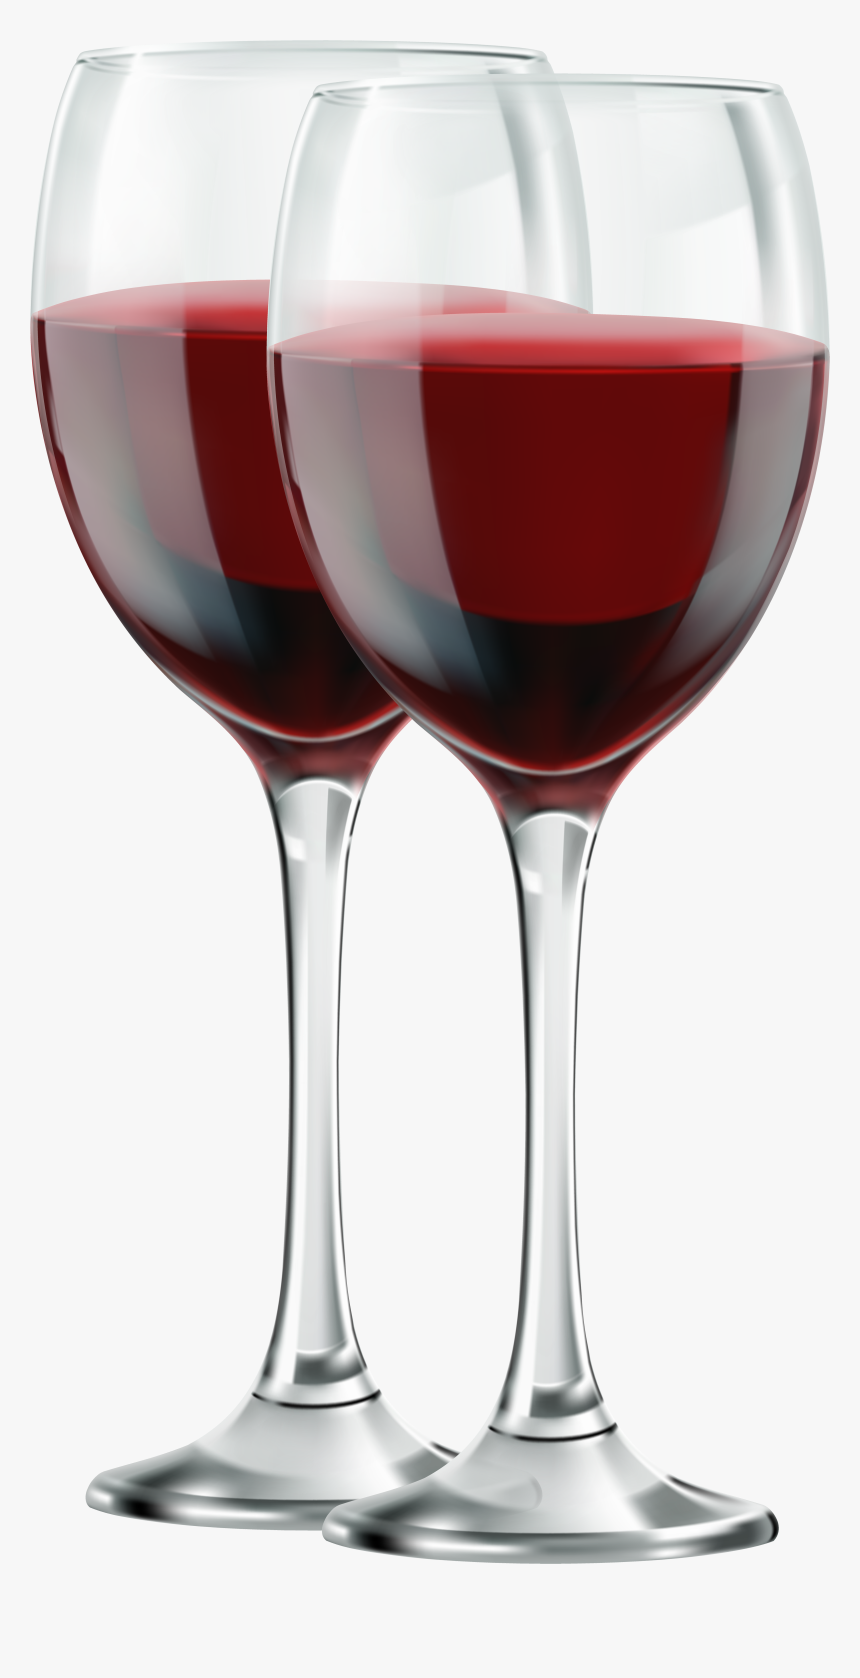 Transparent Background Red Wine Glass Png, Png Download, Free Download